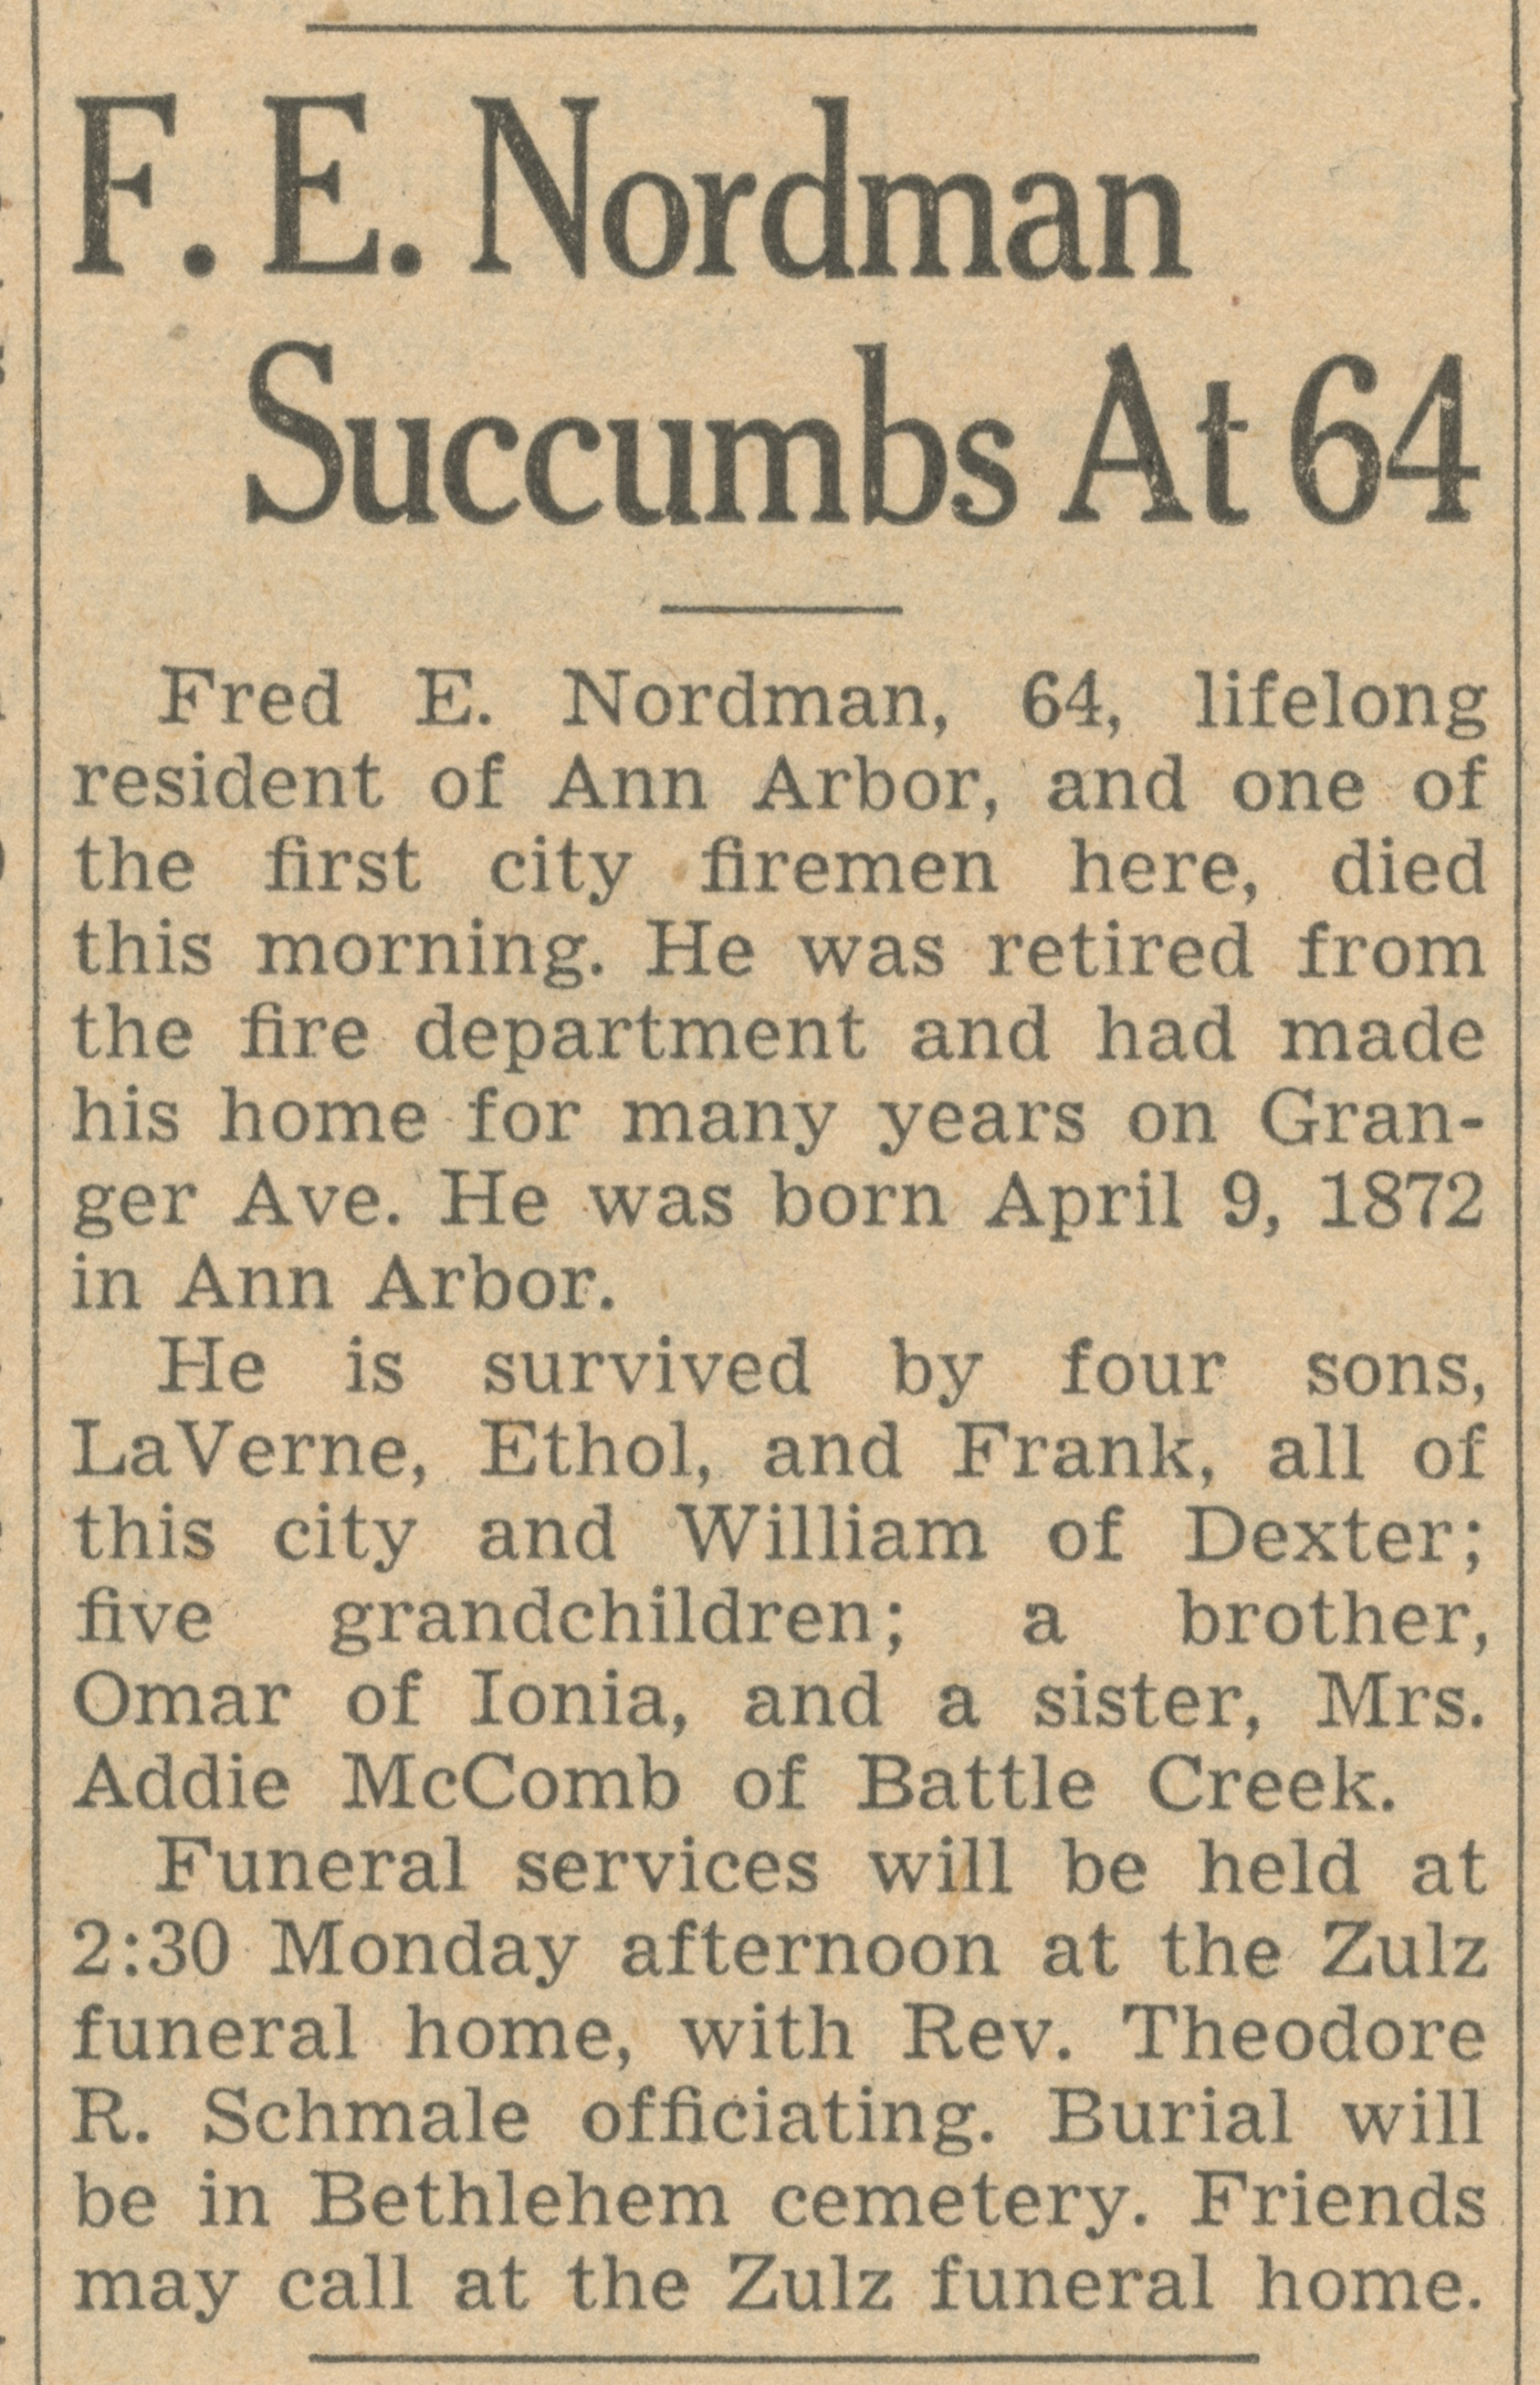 F. E. Nordman Succumbs At 64 image